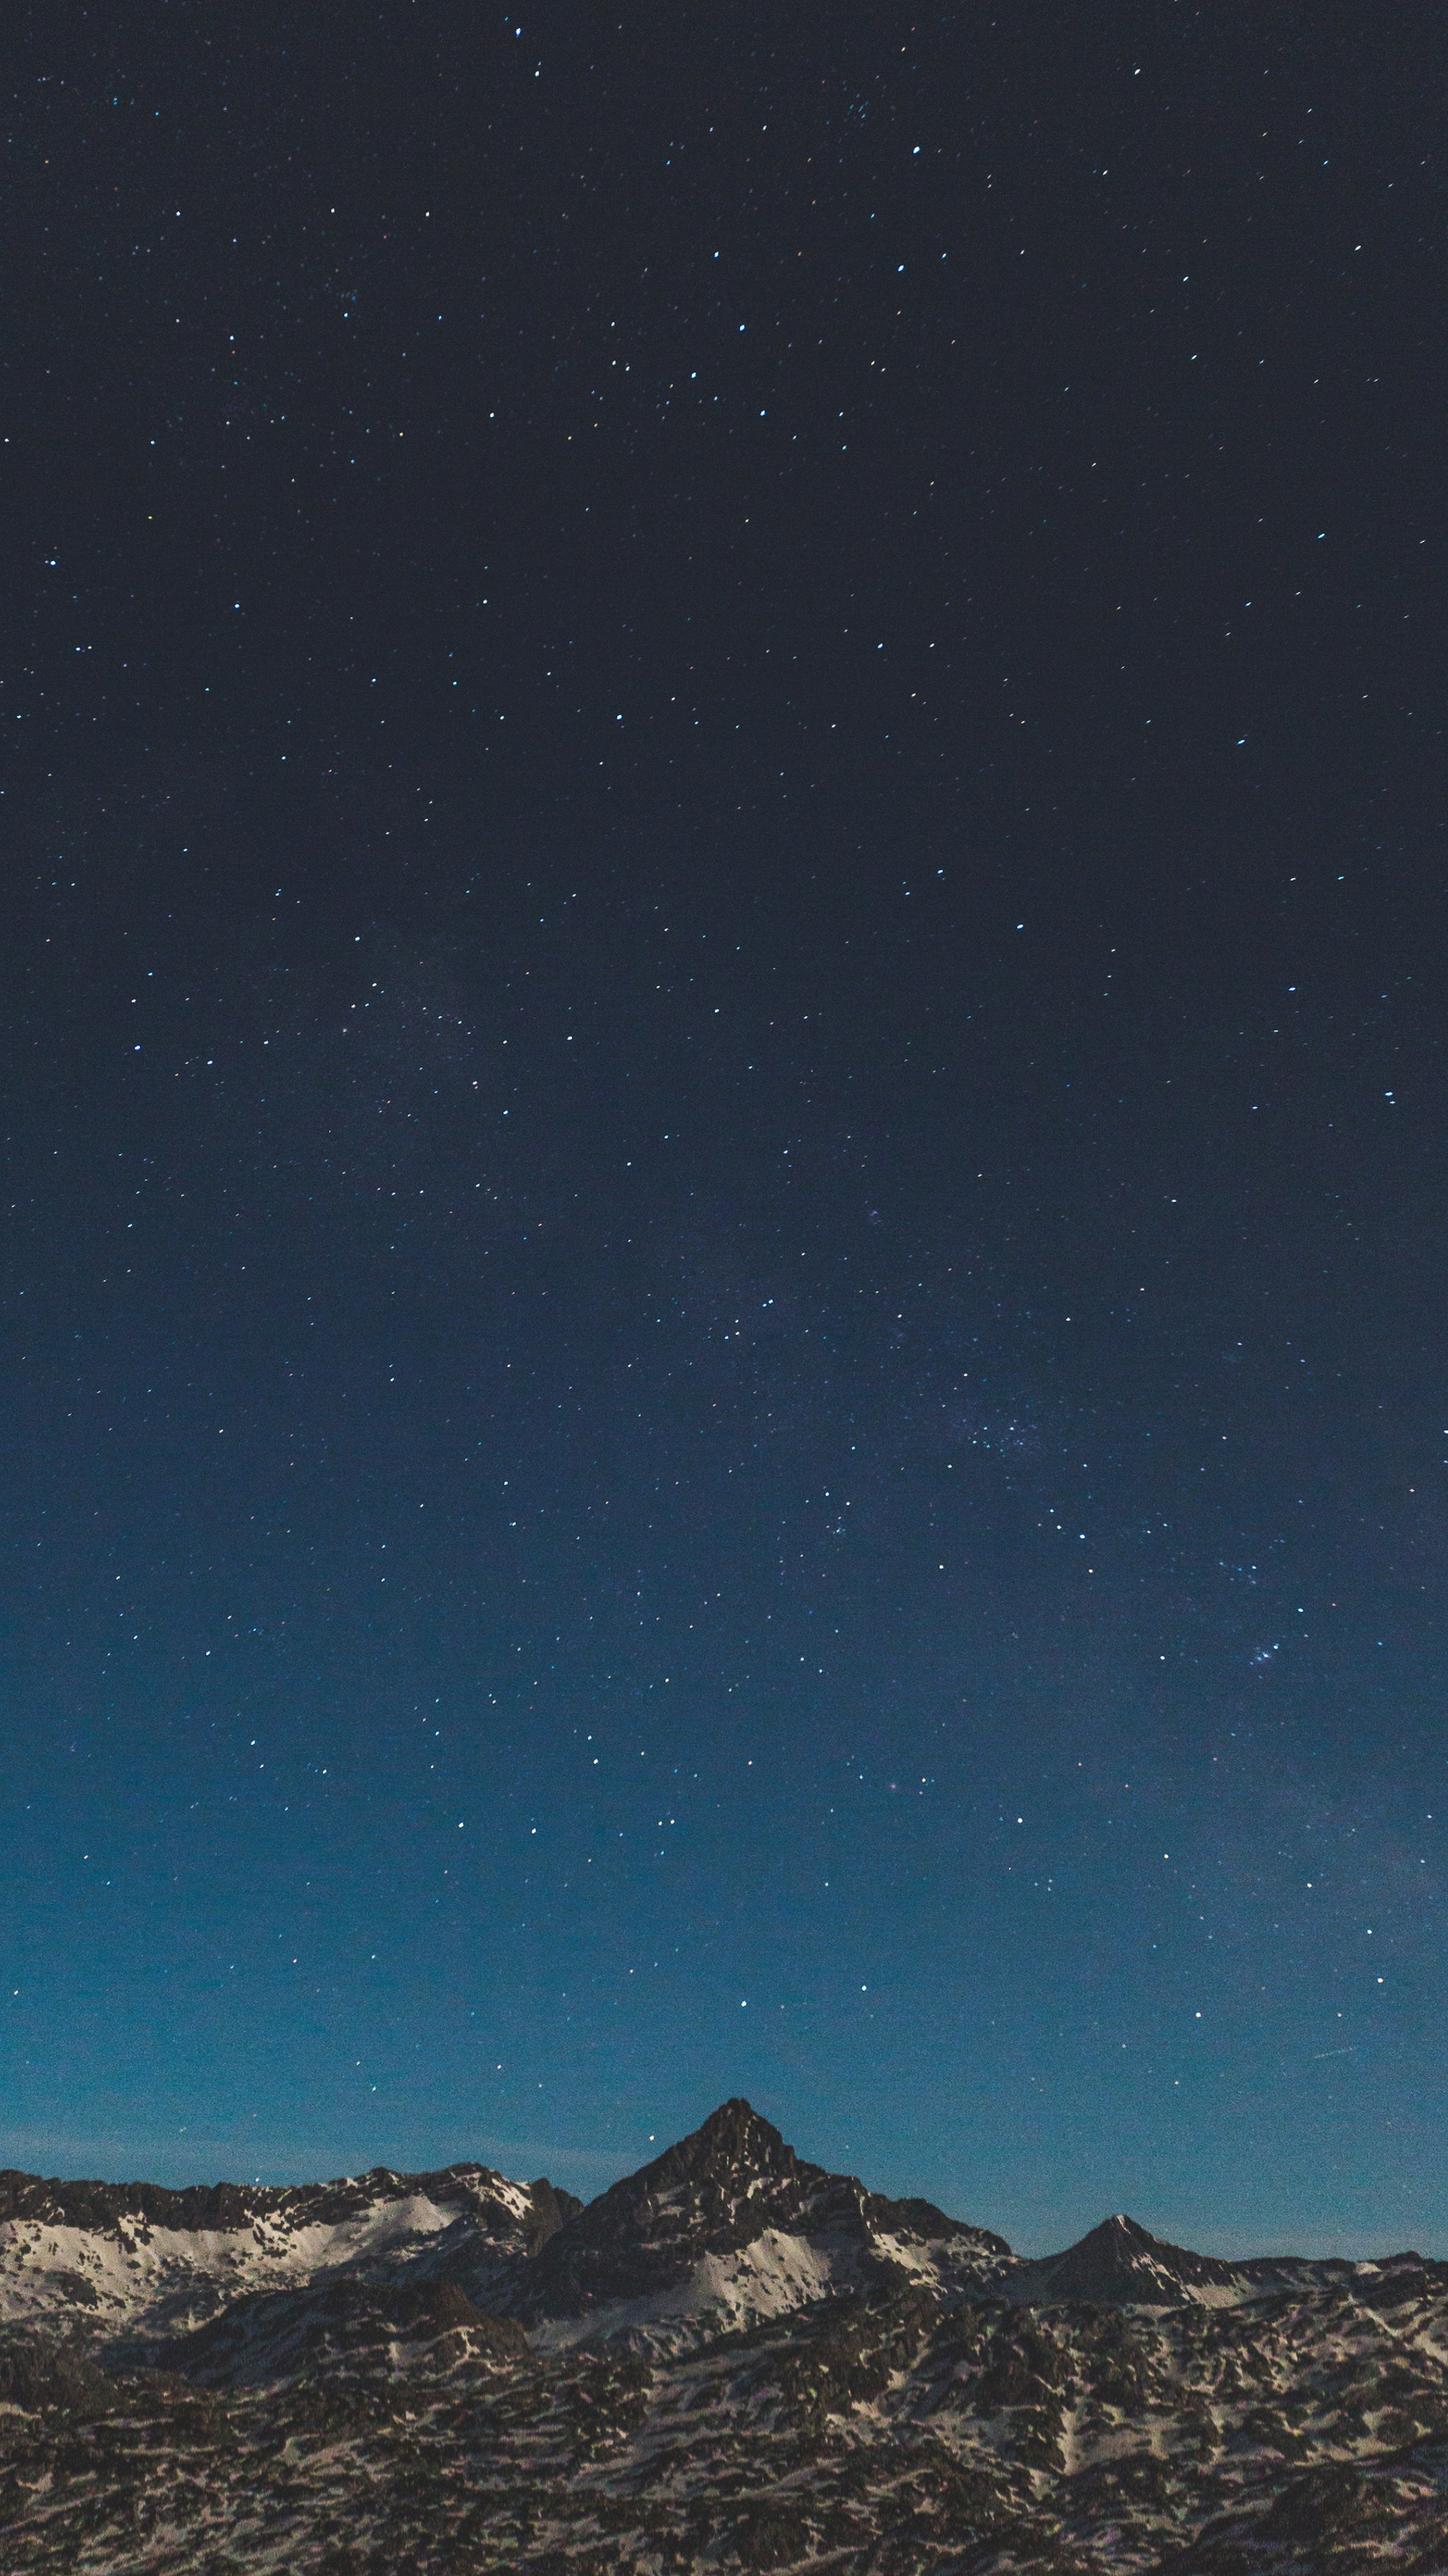 Night Sky View Snow Mountain Galaxy S8 iPhone Wallpaper iphoneswallpapers com